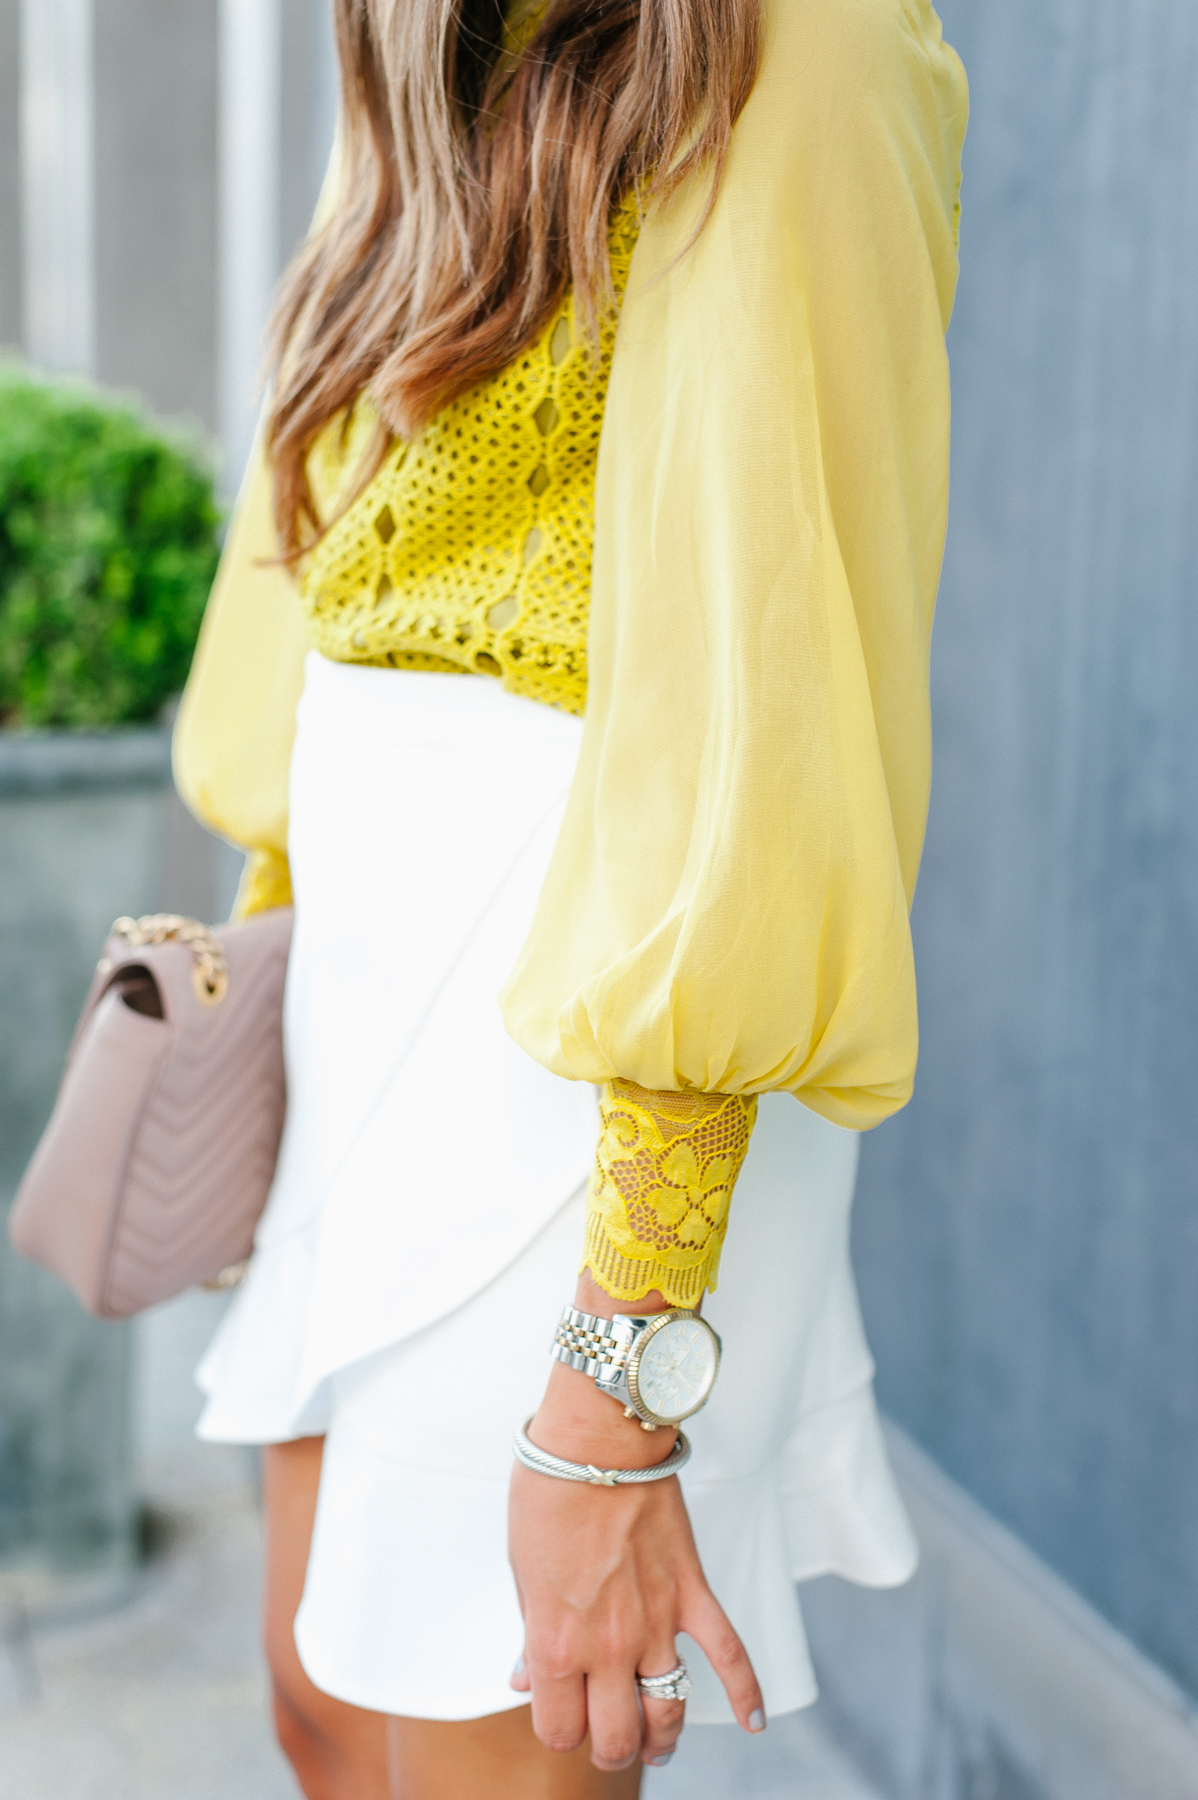 Dress Up Buttercup, Dede Raad, Houston blogger, Fashion blogger, White skirt with pop of color